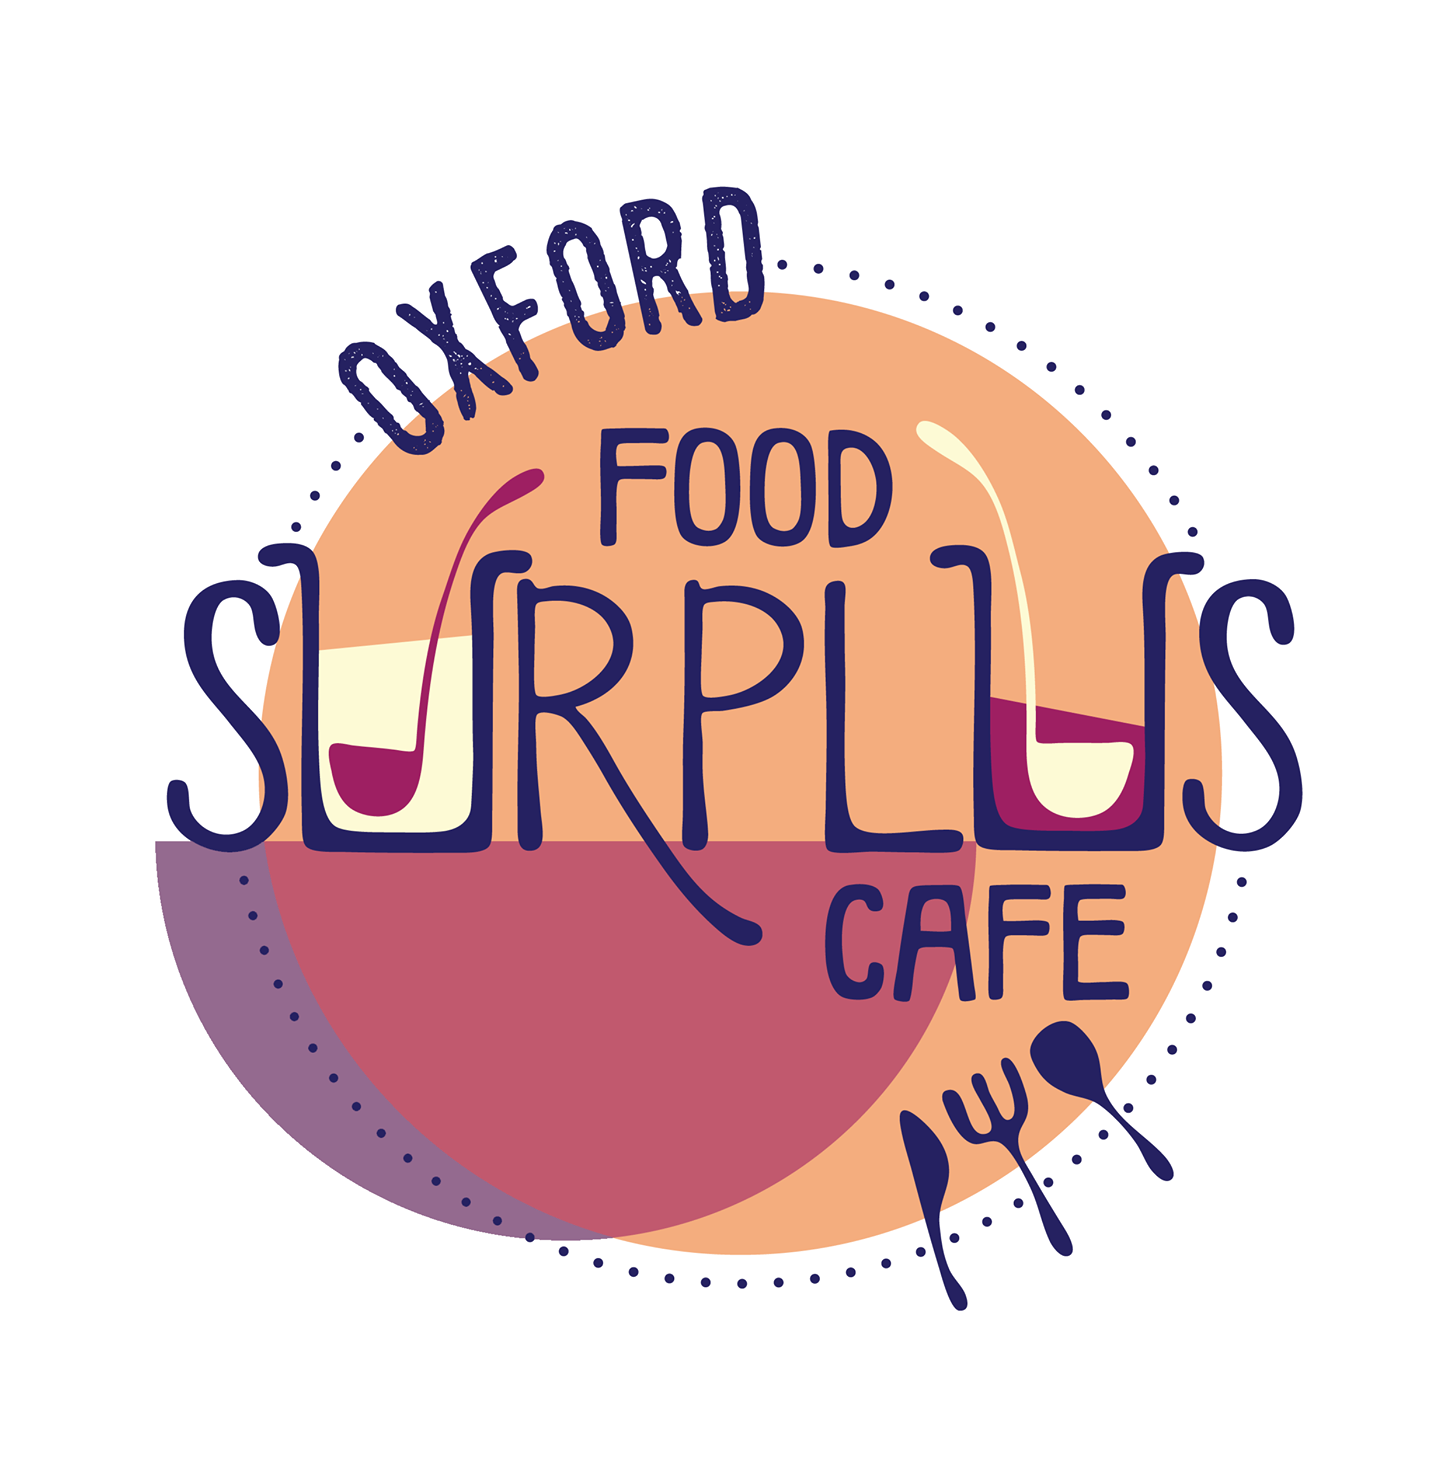 Oxford Food Surplus Café